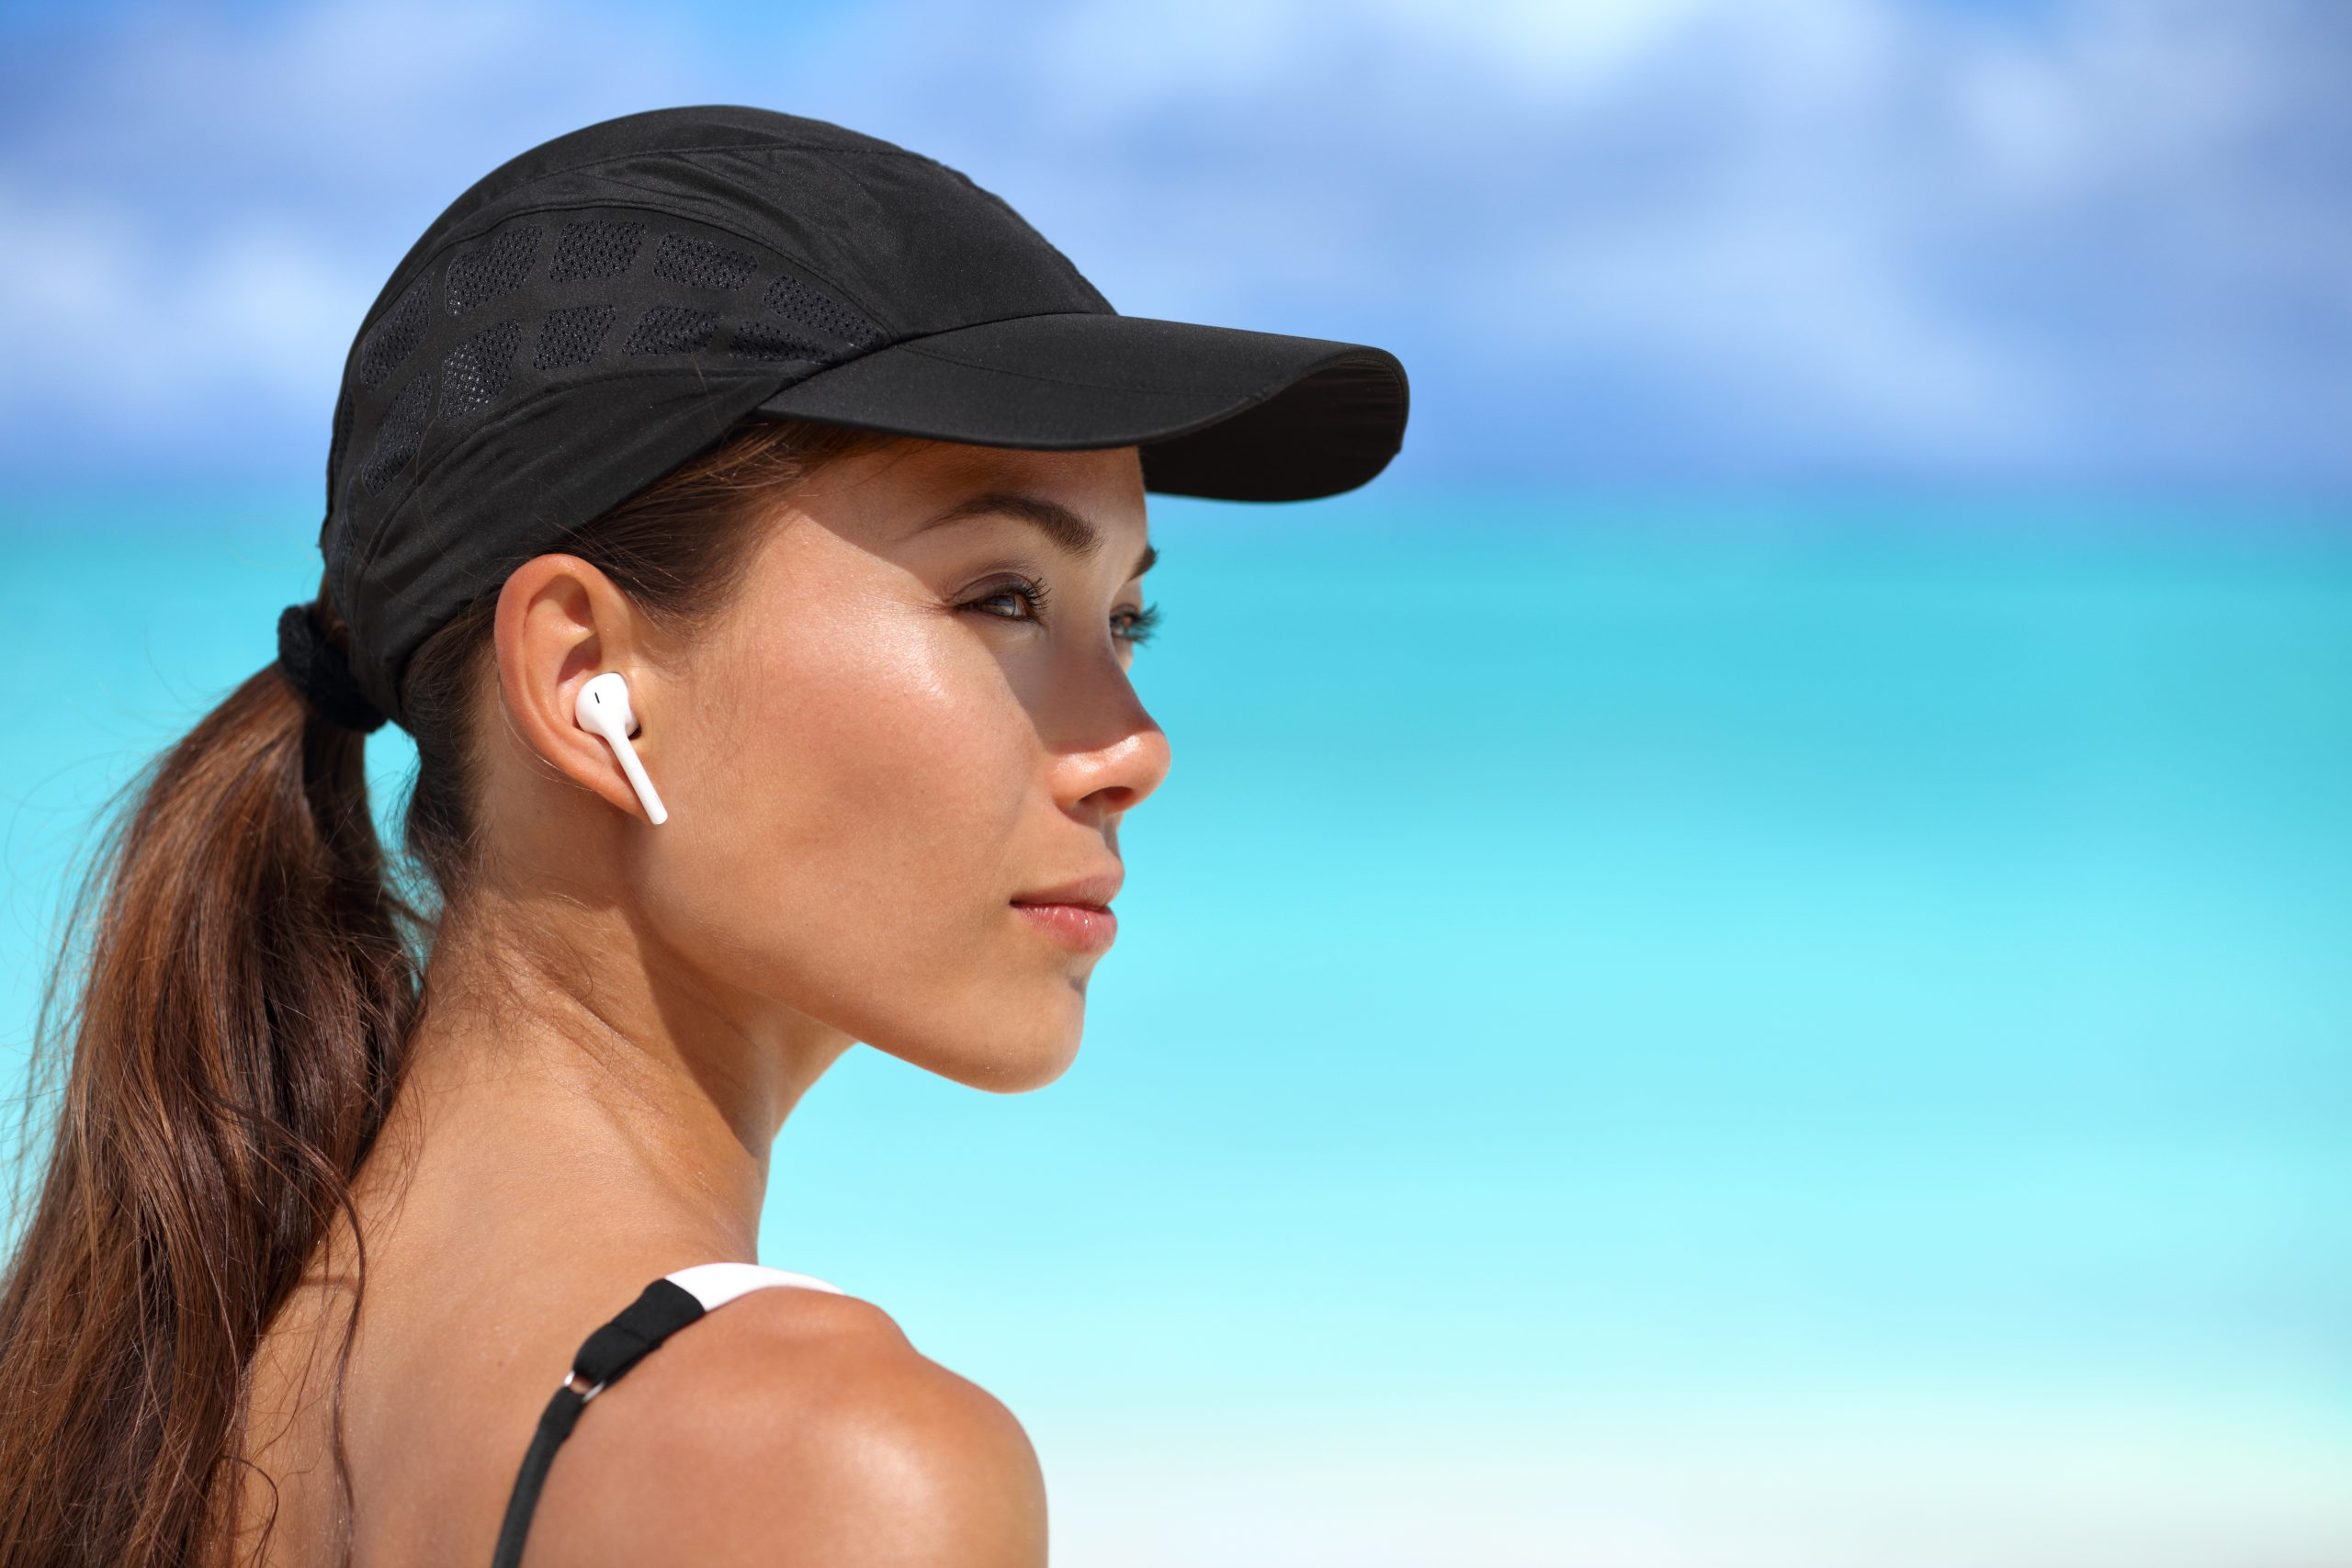 Wireless headphones and accessories make it easier to stay connected